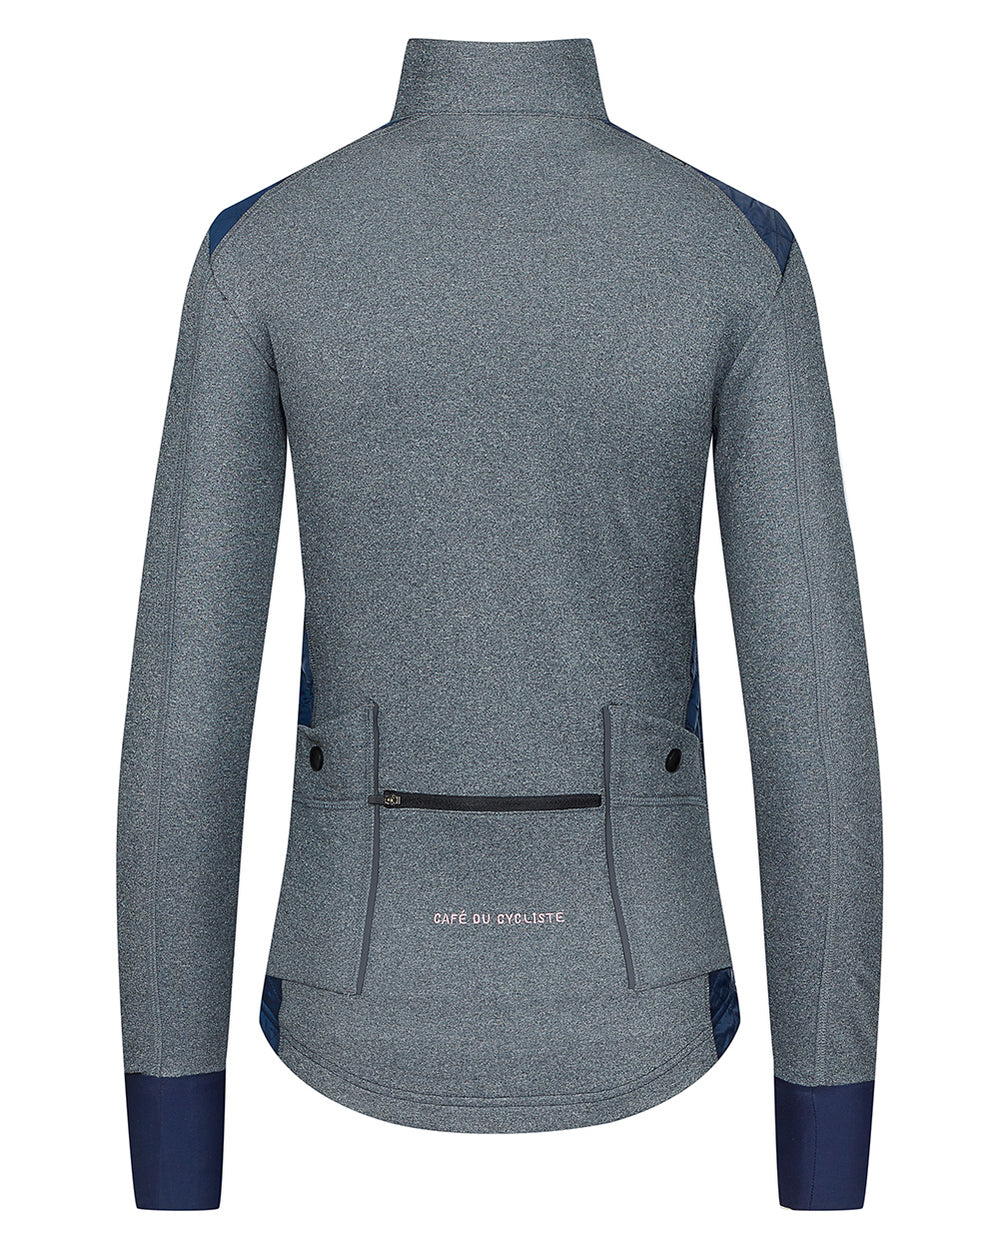 Heidi Winter Jacket Women Navy/Grey